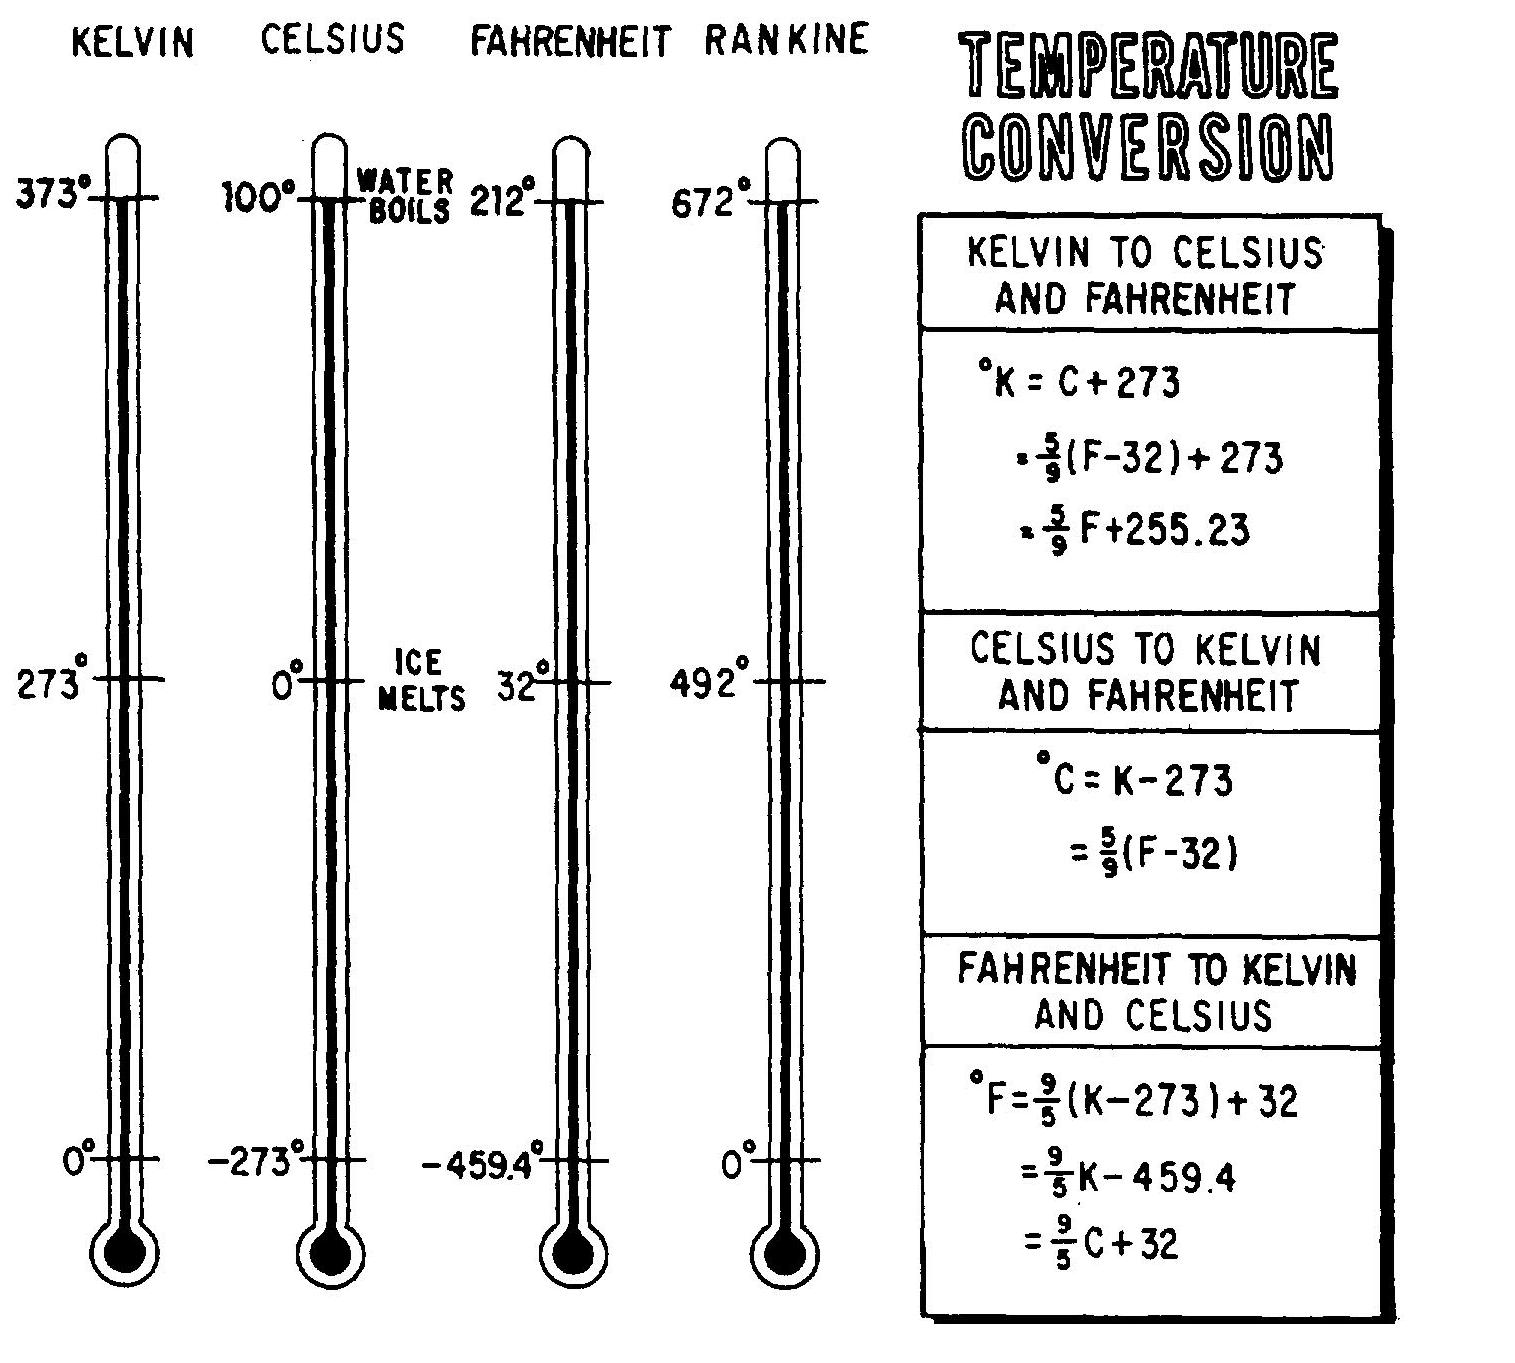 35 Temperature Conversion Worksheet Kelvin Celsius